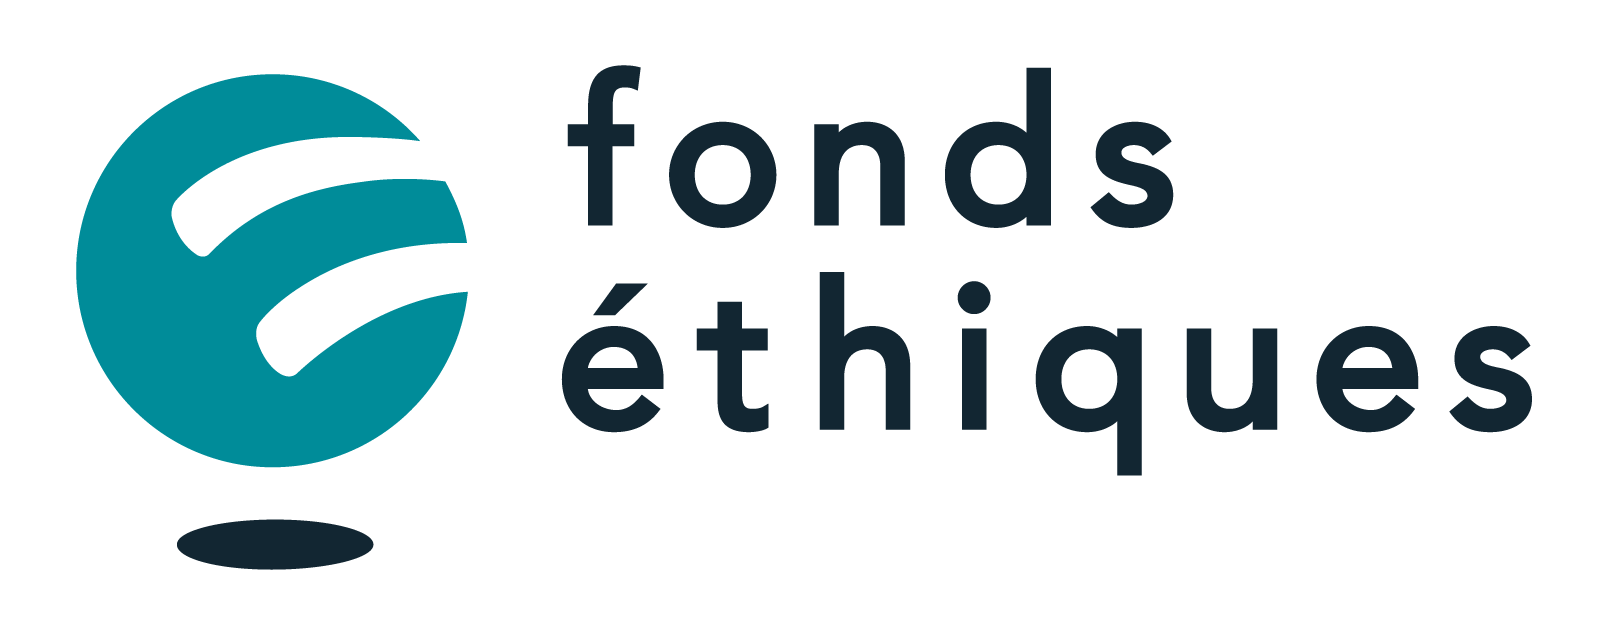 Ethical Funds